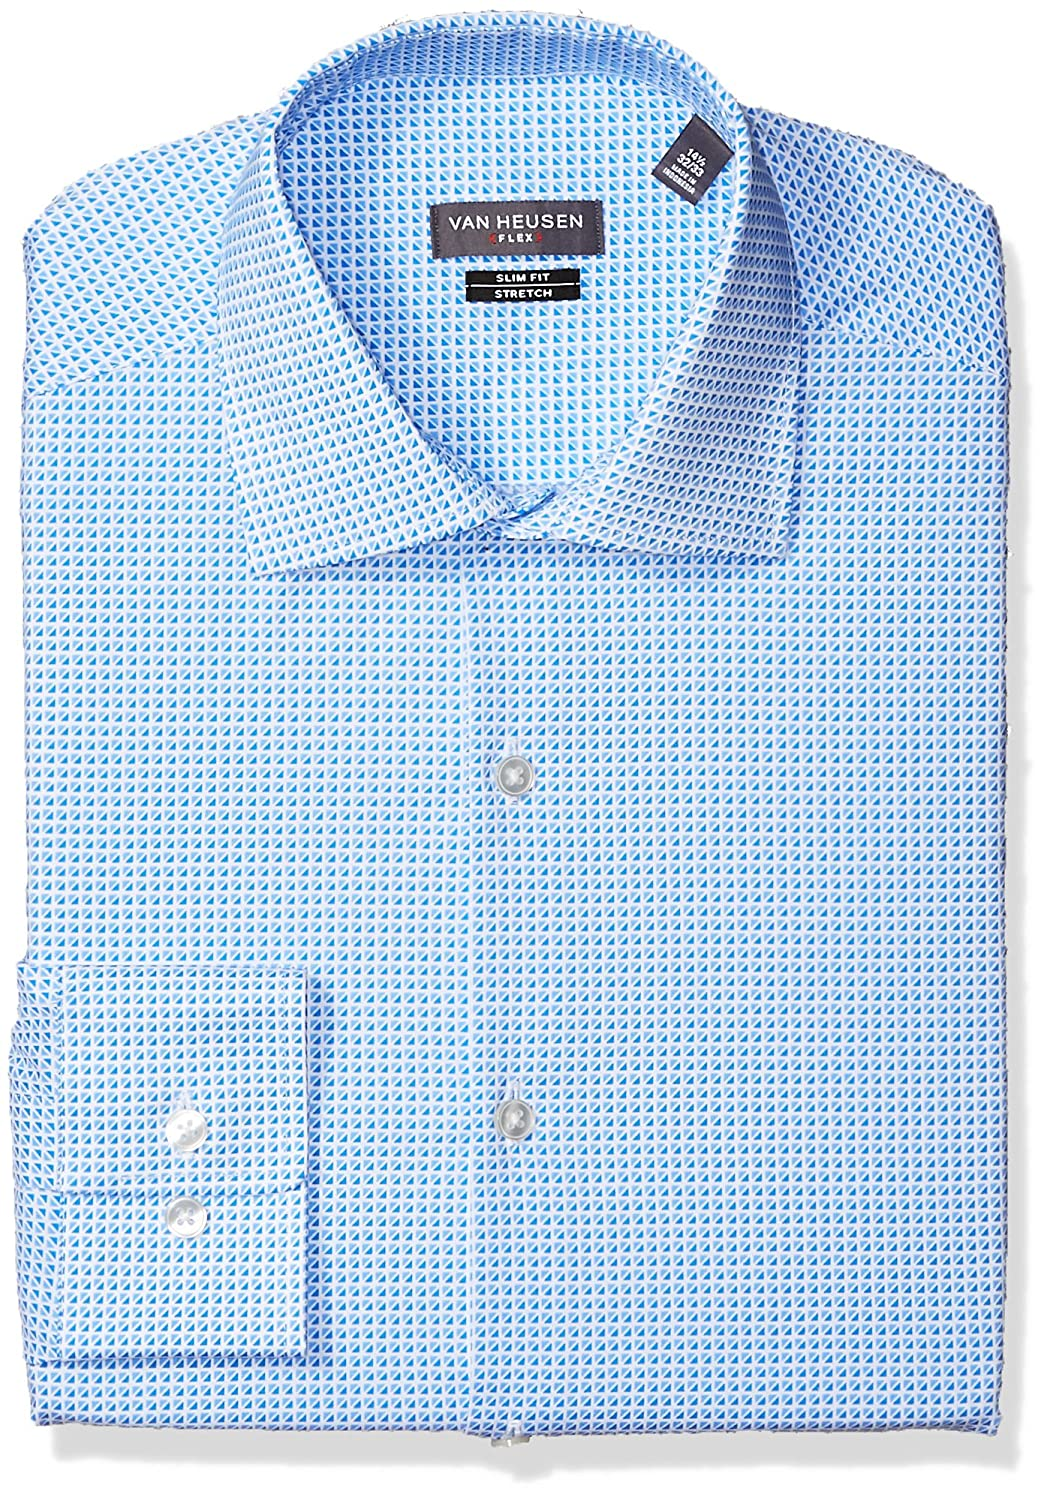 8fd16742a56b9 Top 10 wholesale Van Heusen Fitted Dress Shirts - Chinabrands.com